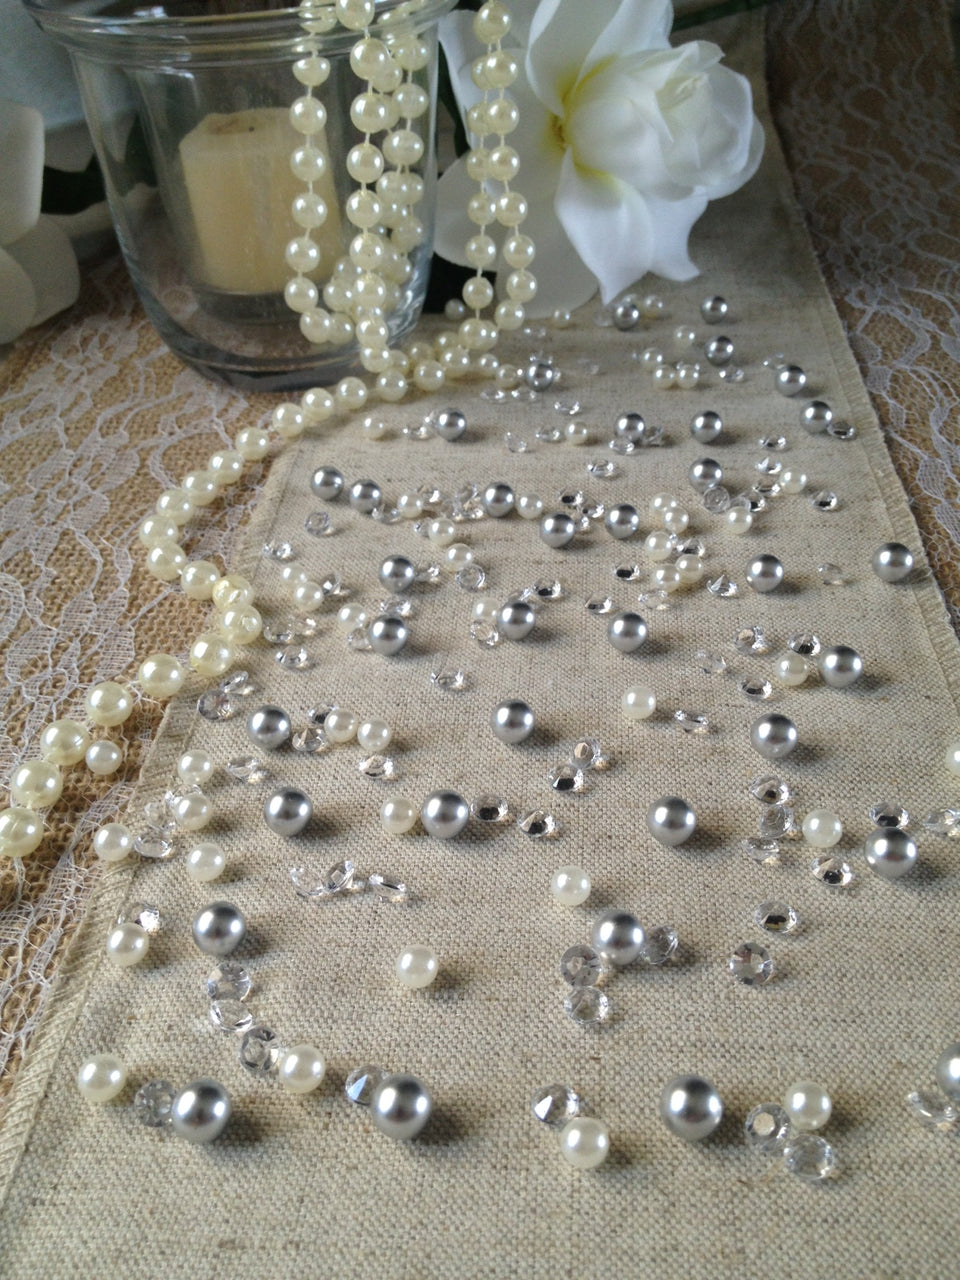 250pc Vintage Silver Pearls & Diamond Table Scatters For Wedding, Parties, Perfect for wine glass fillers, mason jars.